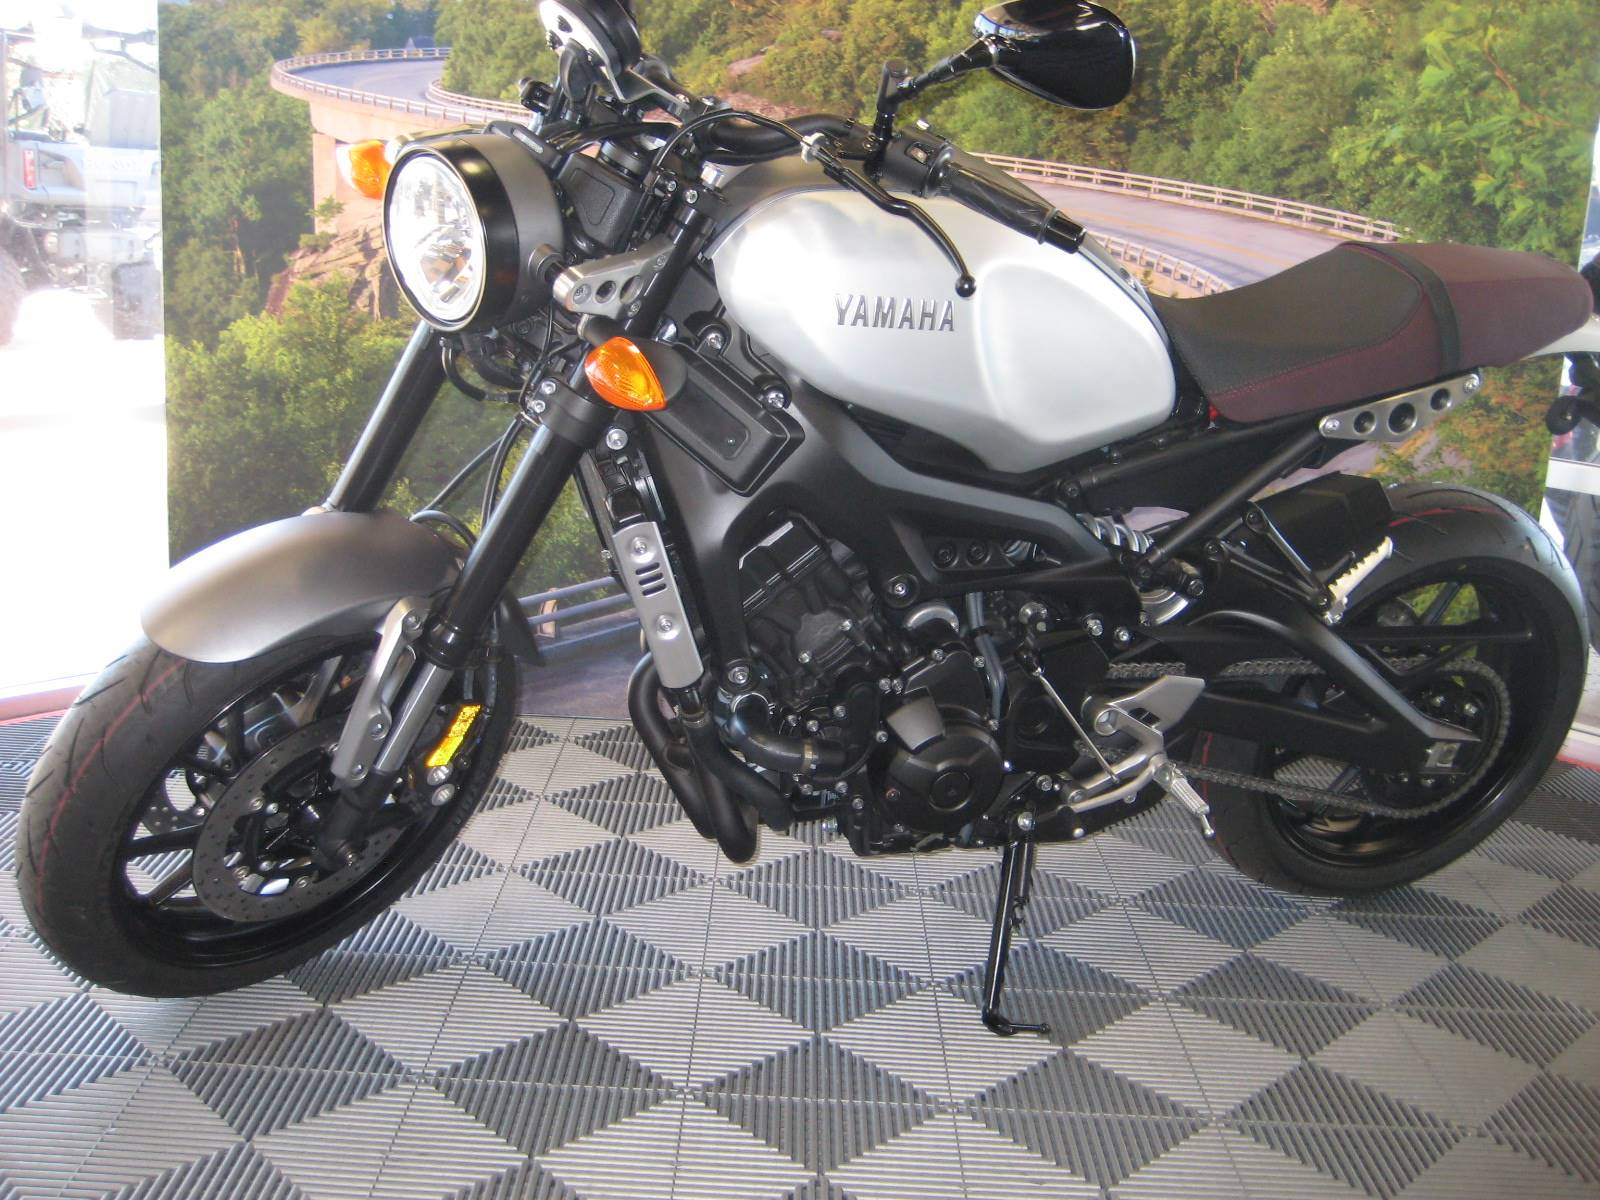 2016 Yamaha XSR900 for sale 15342